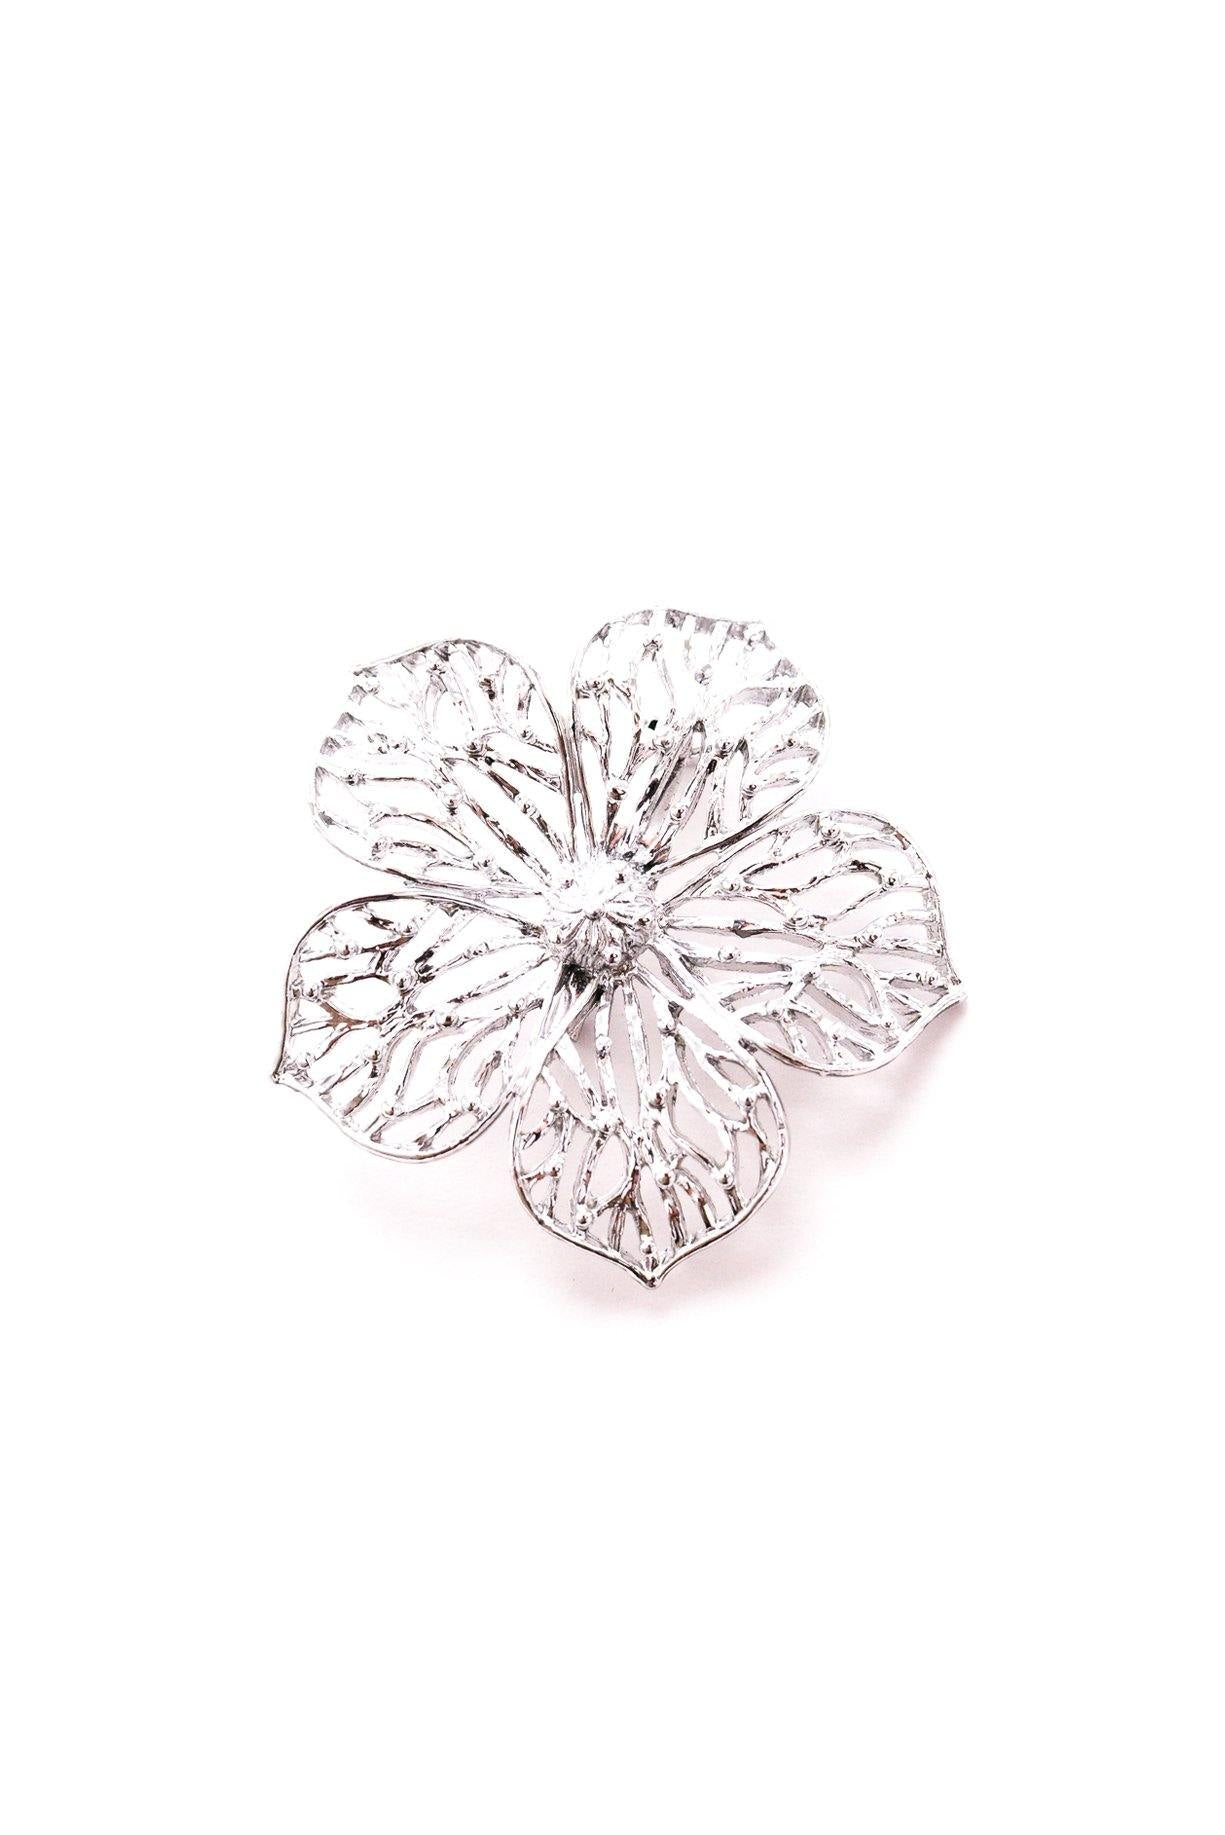 Vintage Gerry's Silver Floral Brooch from Sweet & Spark